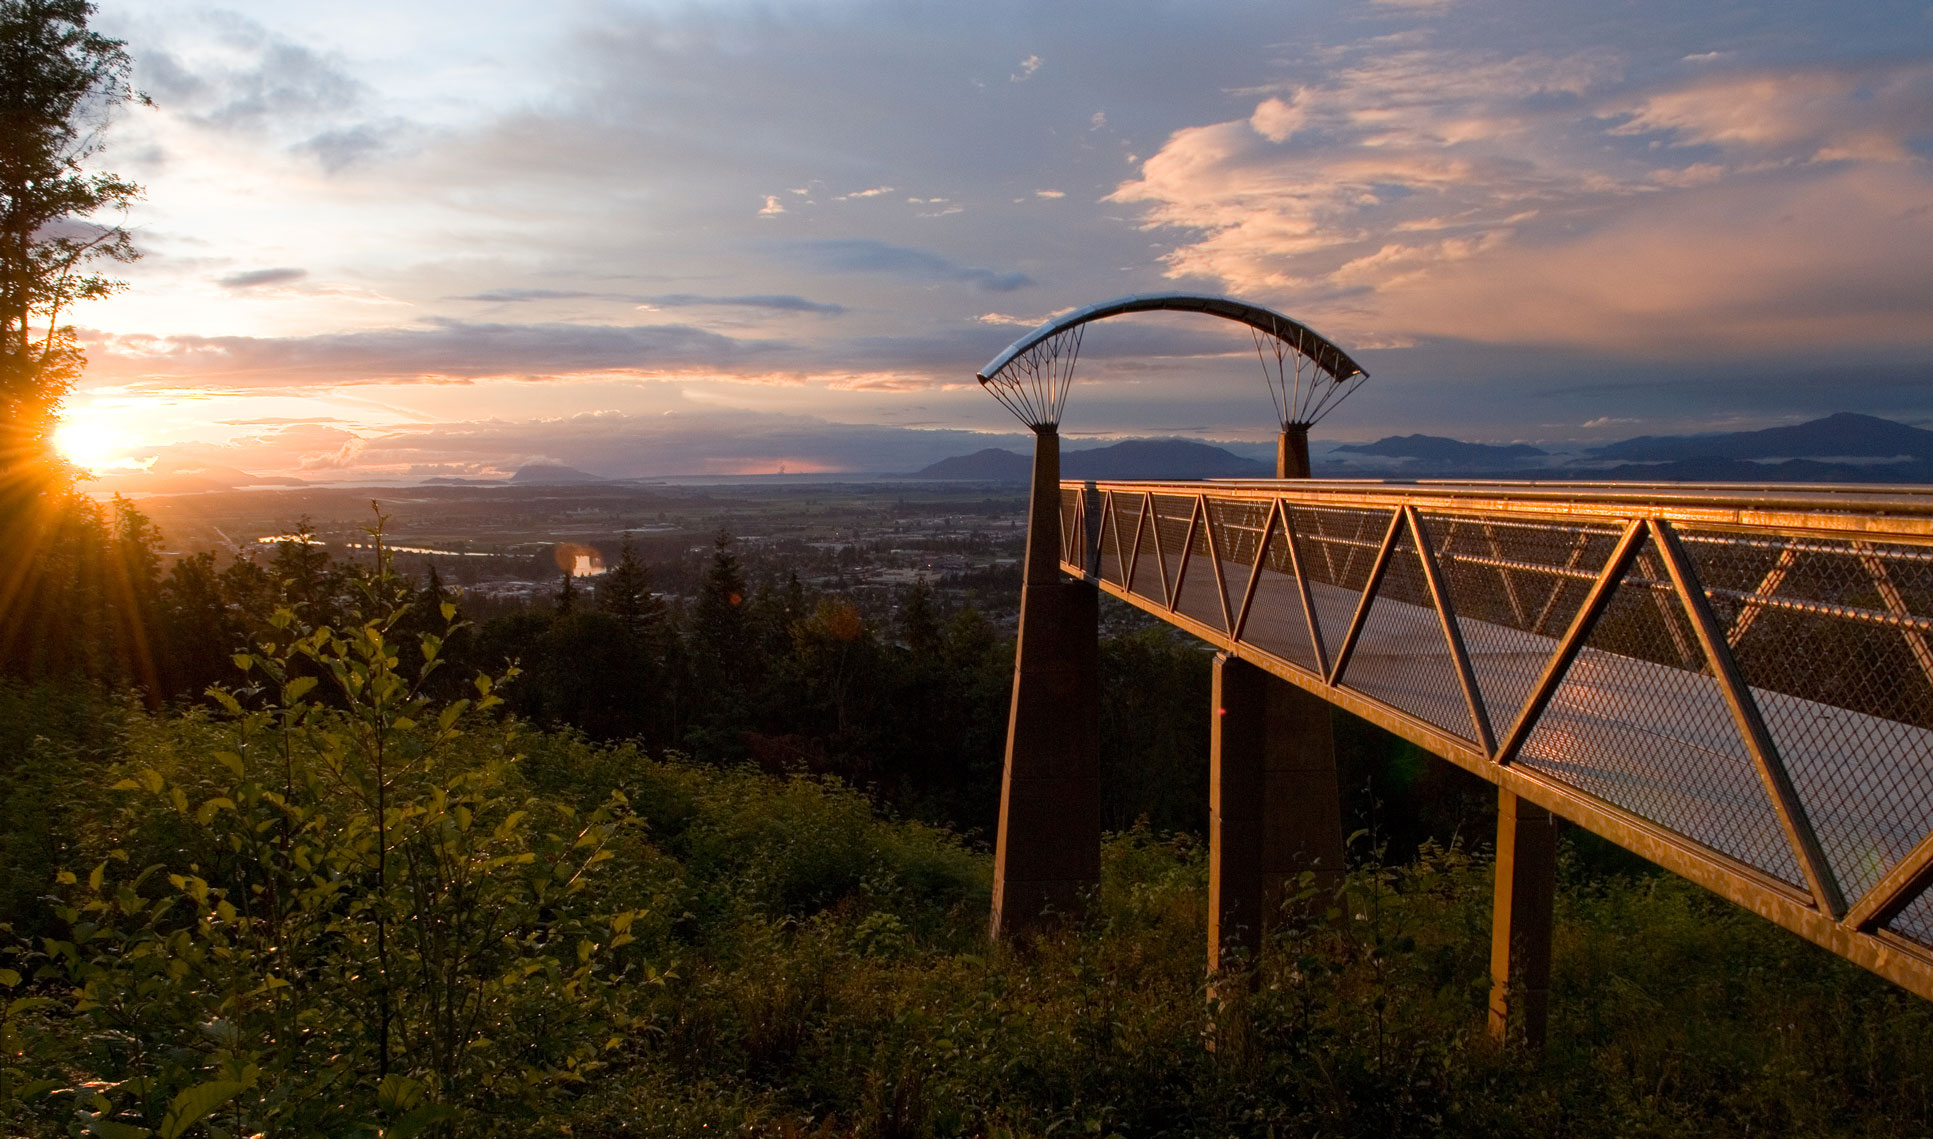 The North Viewpoint's stylish design let's you imagine yourself as paraglider looking down on the city of Mount Vernon and the lower Skagit Valley. Across the horizon from west to east are Padilla Bay, North Puget Sound, the San Juan Islands, Blanchard Mountain, the Chuckanut Range, and finally Mt. Baker.  Photo © Rob Barker